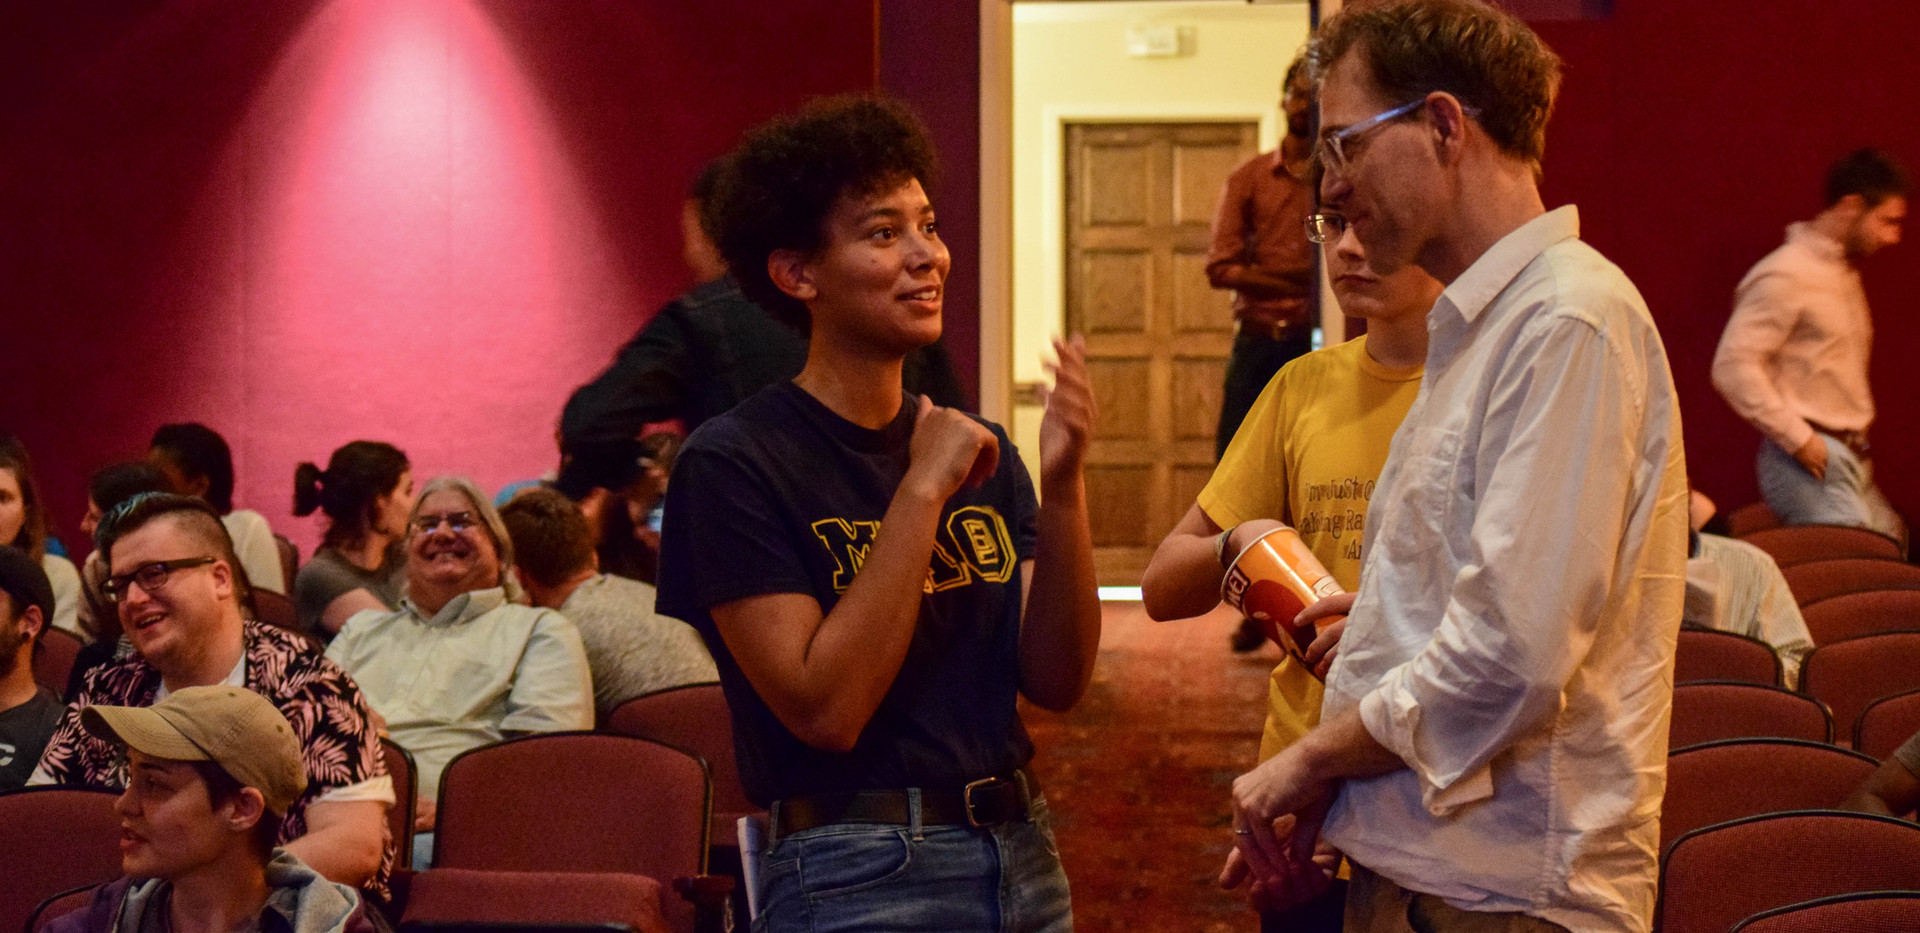 Faculty Advisor, Charles Dye (right), engaging with patrons during intermission.